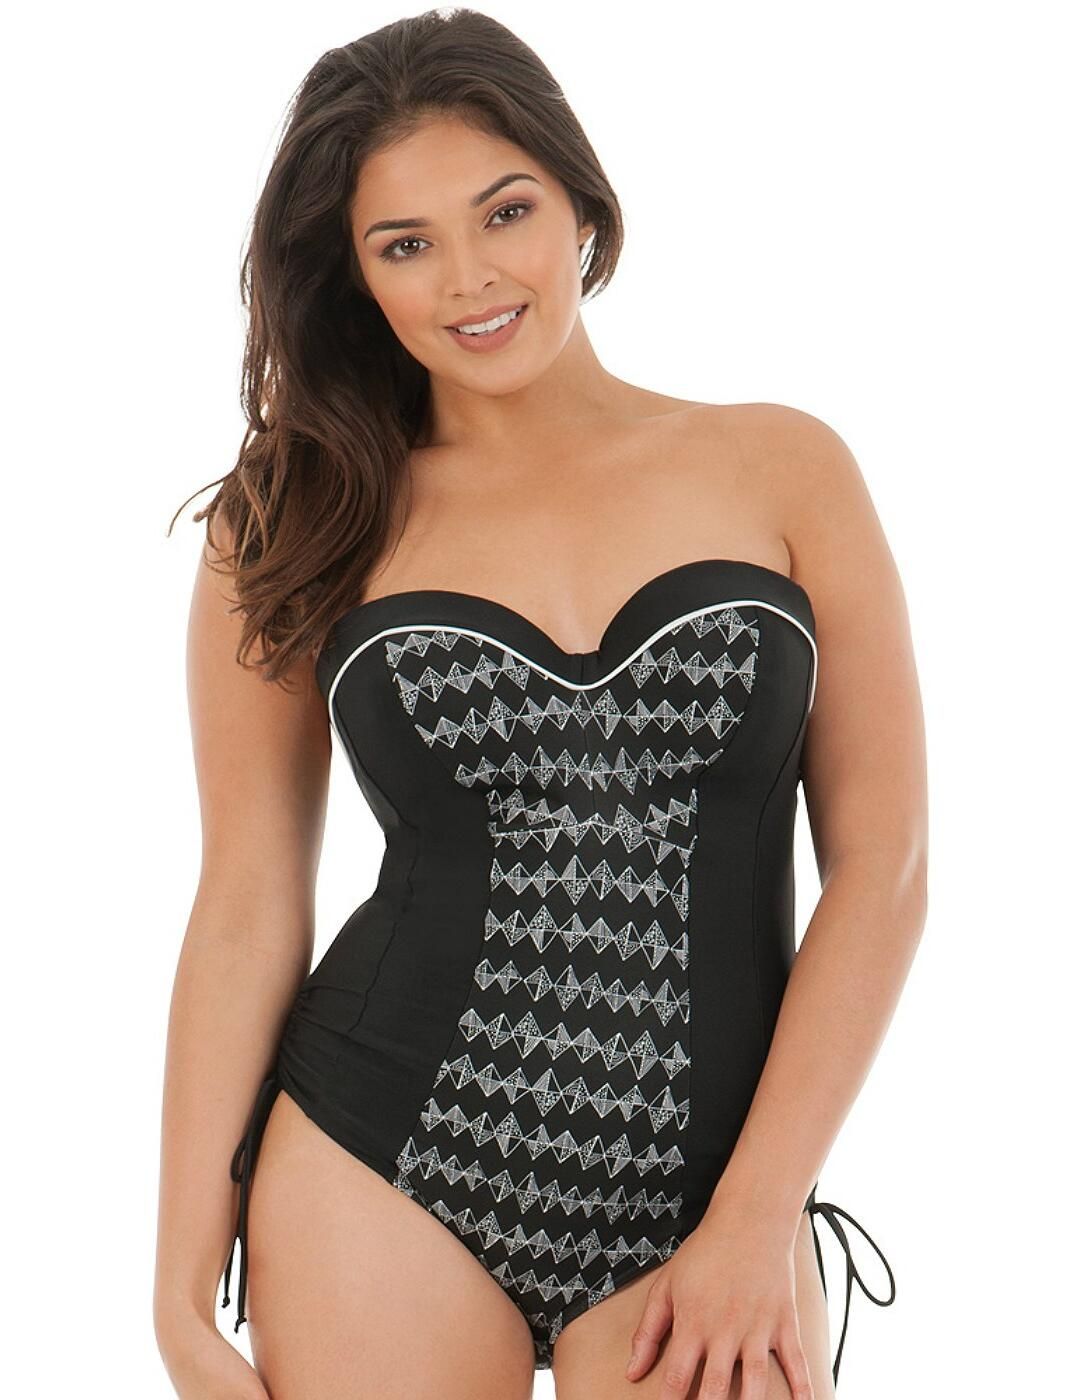 CS4457 Curvy Kate Euphoria Underwired Padded Swimsuit - CS4457 Monochrome